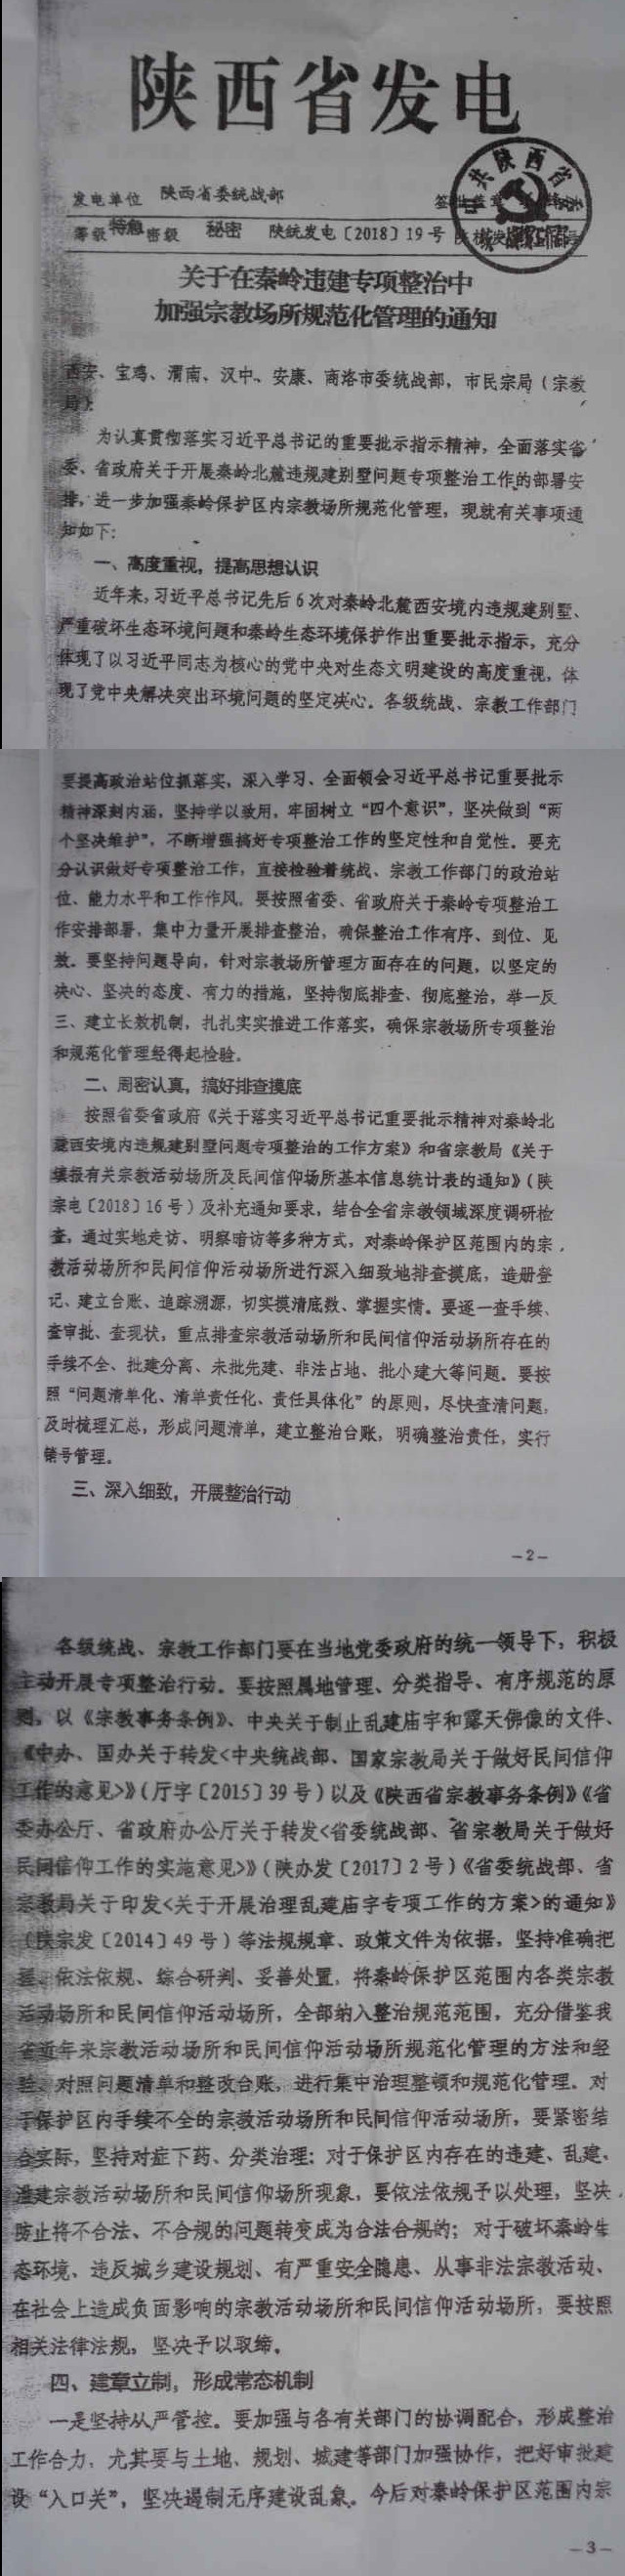 Document-issued-by-the-Shaanxi-Provincial